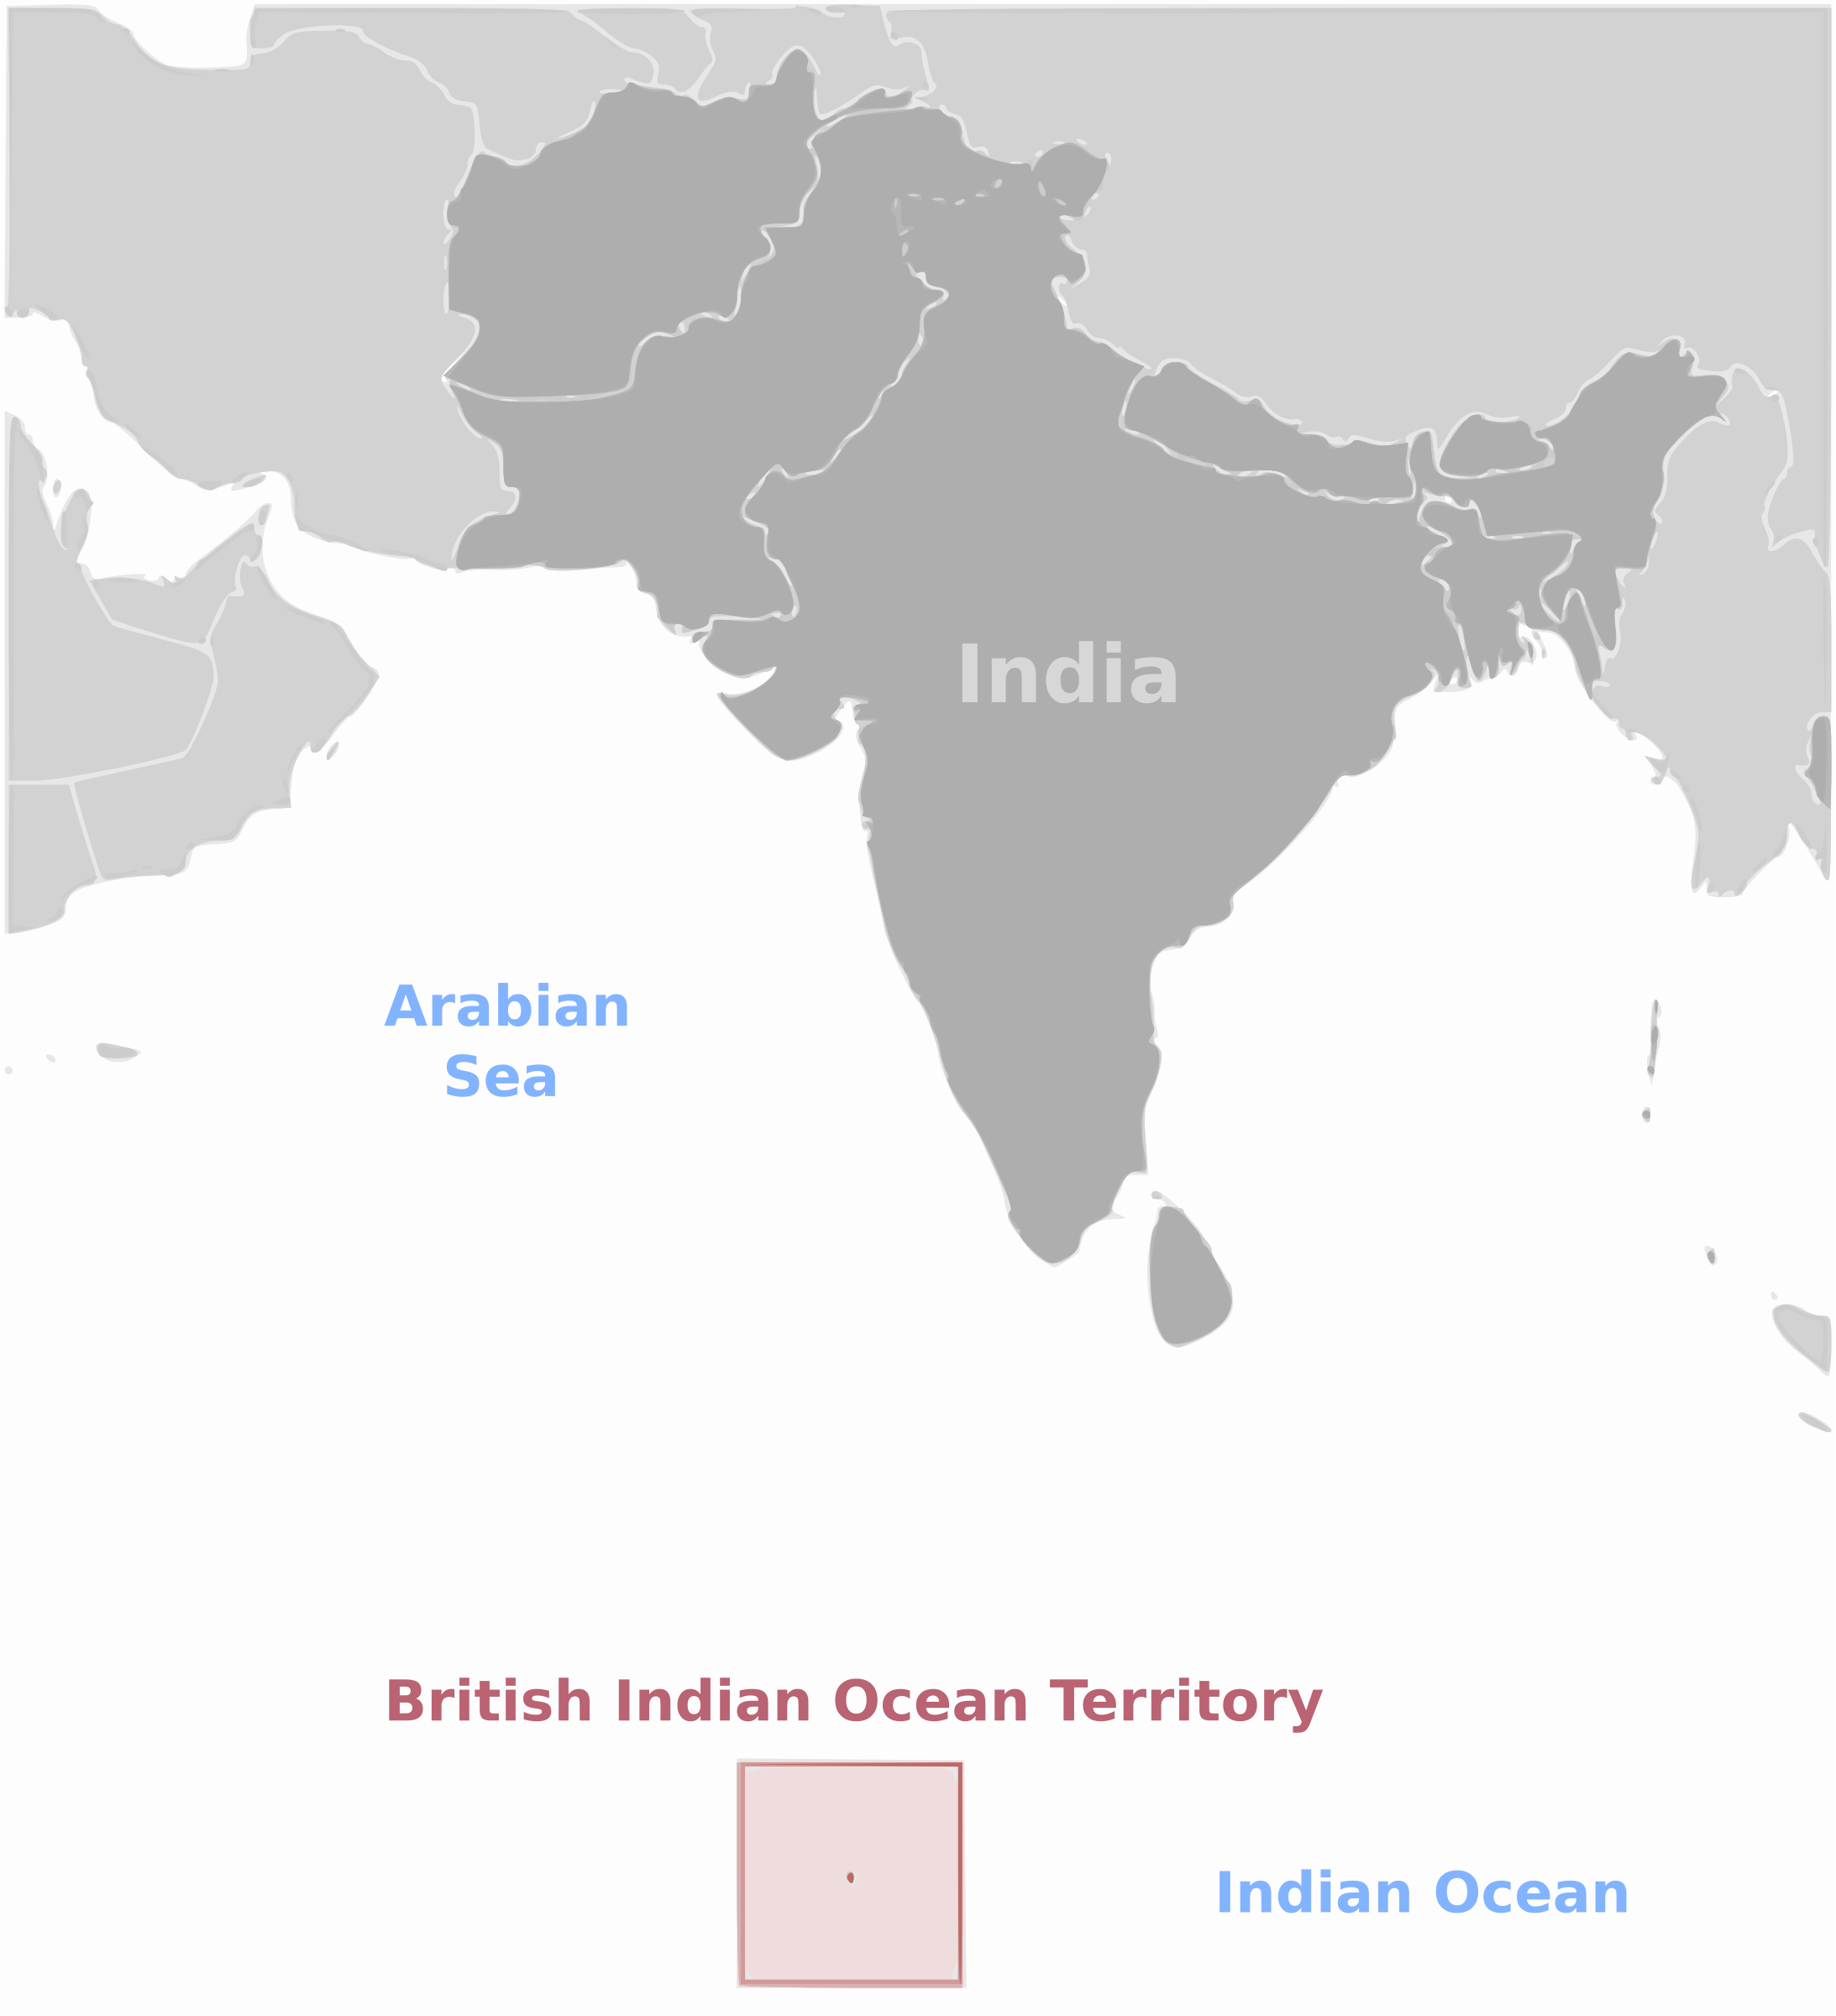 British Indian Ocean Territory location label by wpclipart